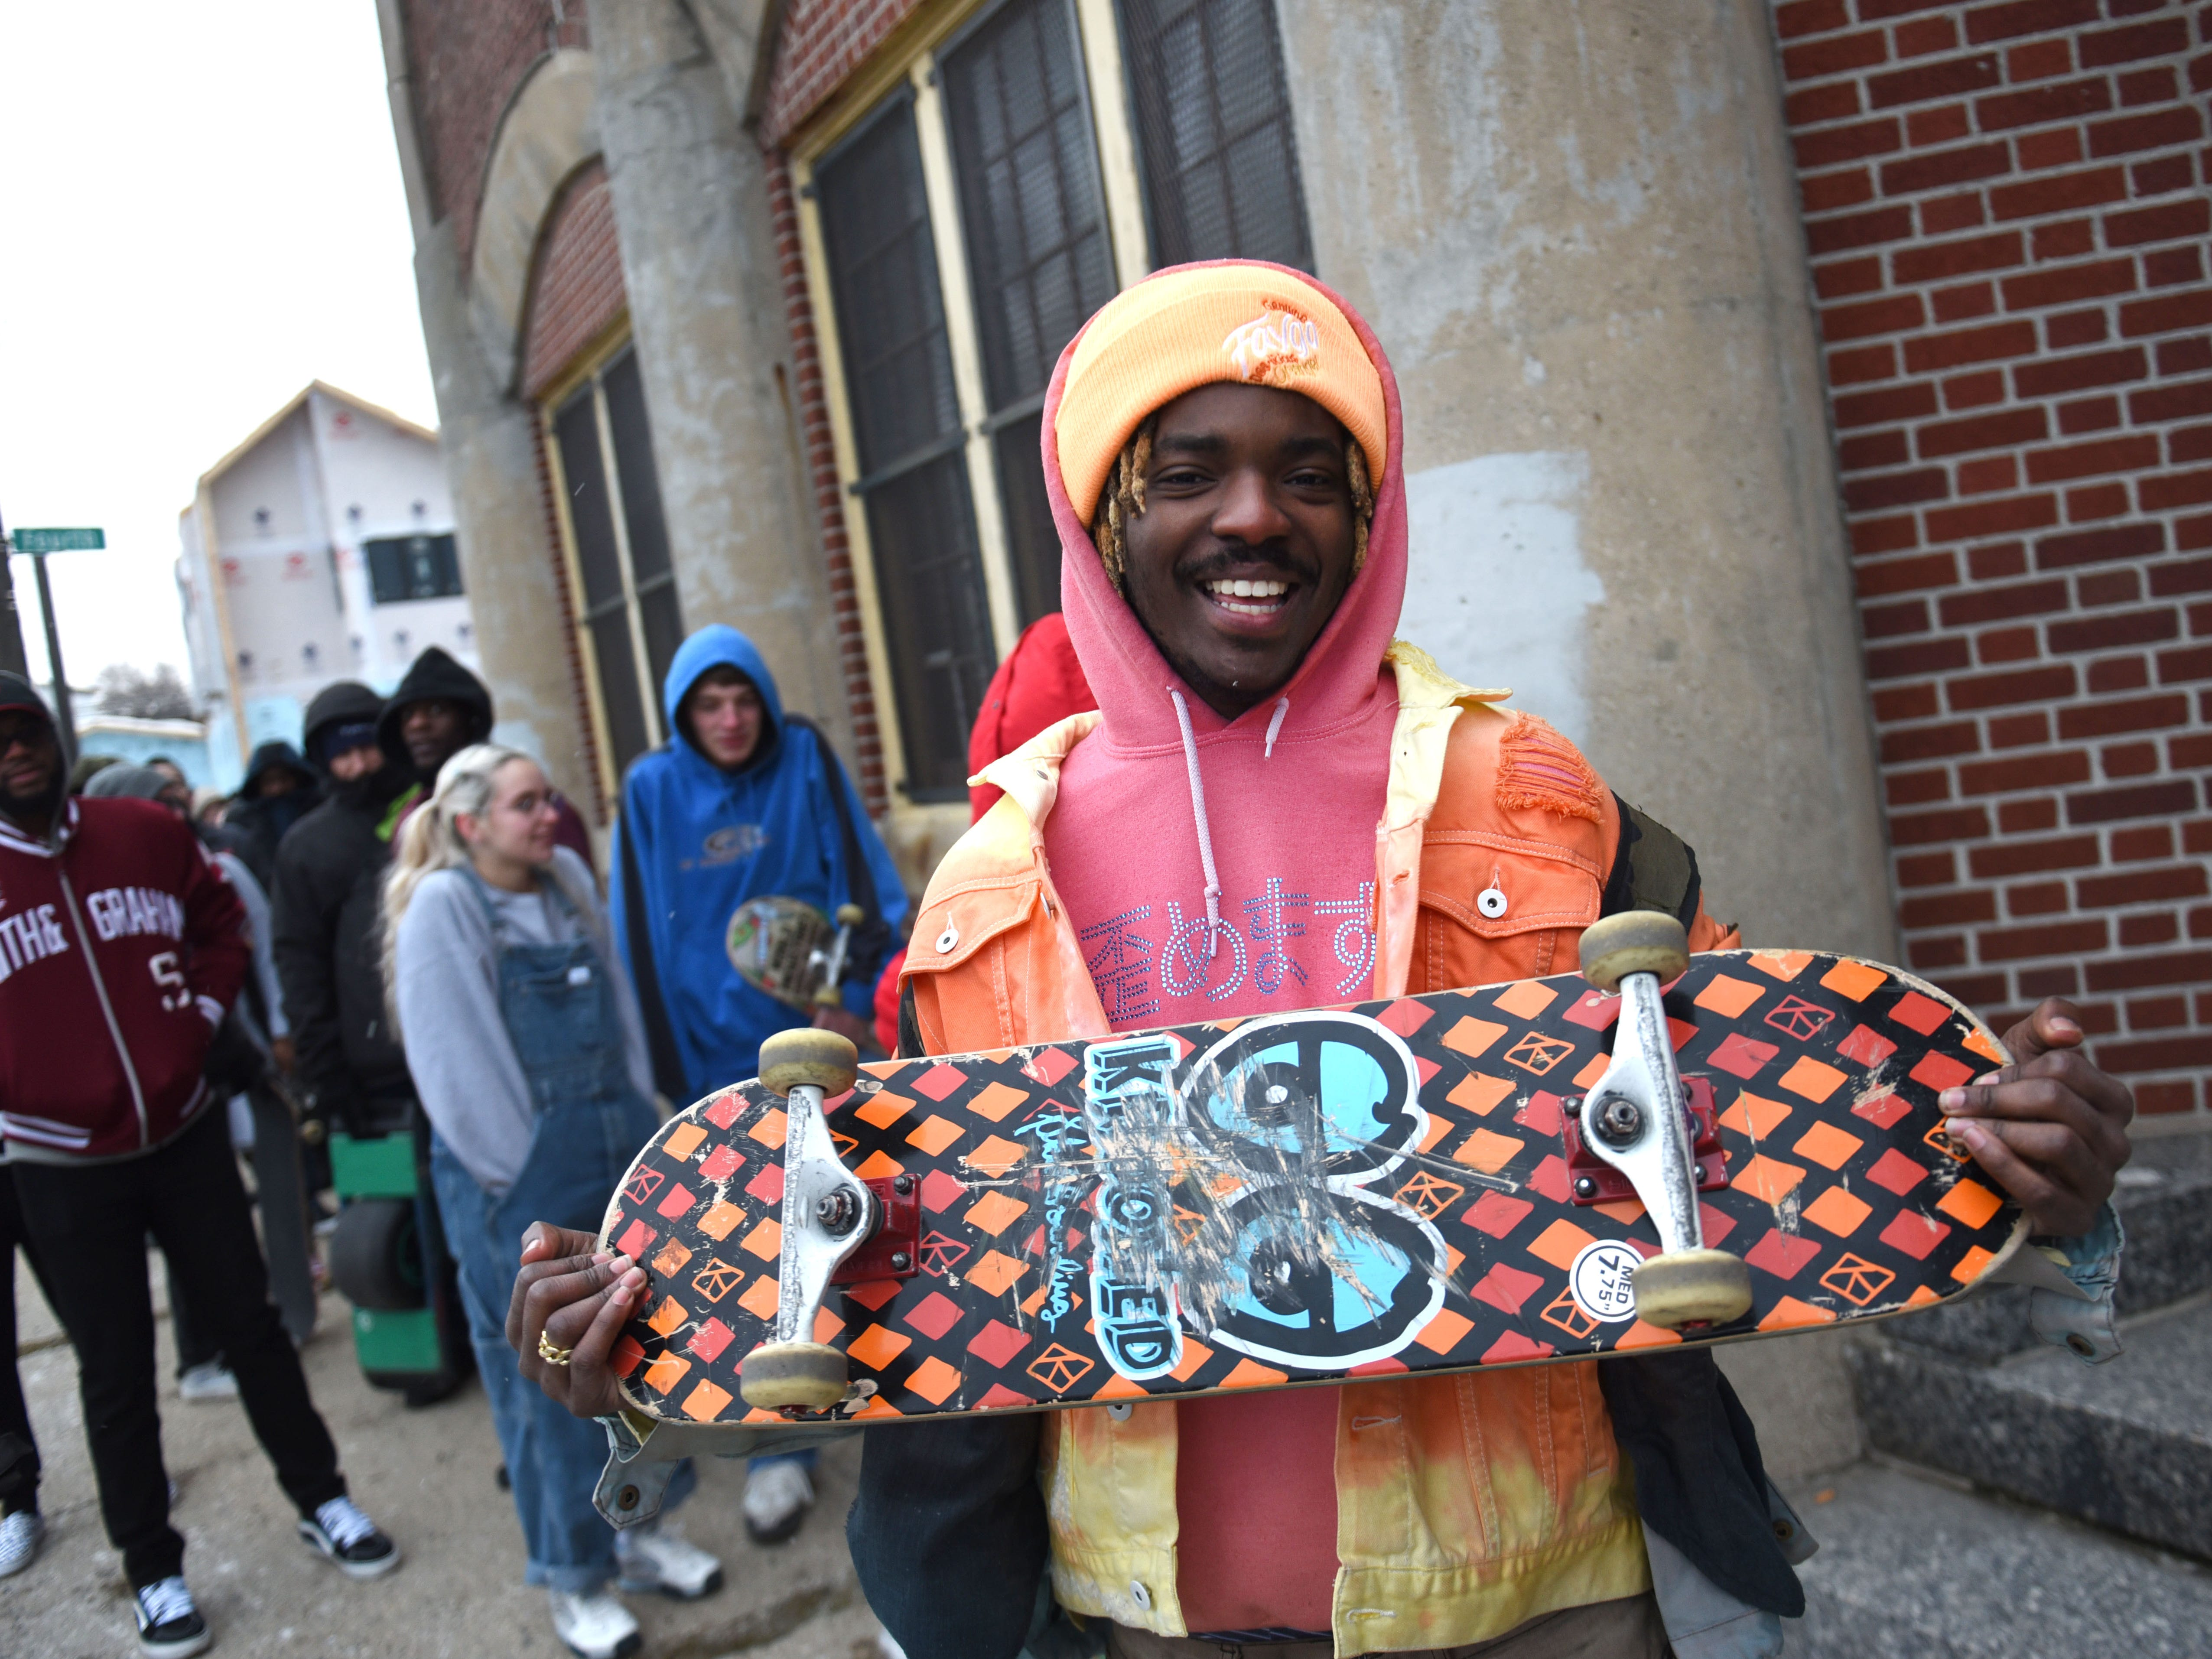 Christopher Dunn of Detroit shows off his board as he waits in line to enter the House of Vans pop-up event in Detroit.